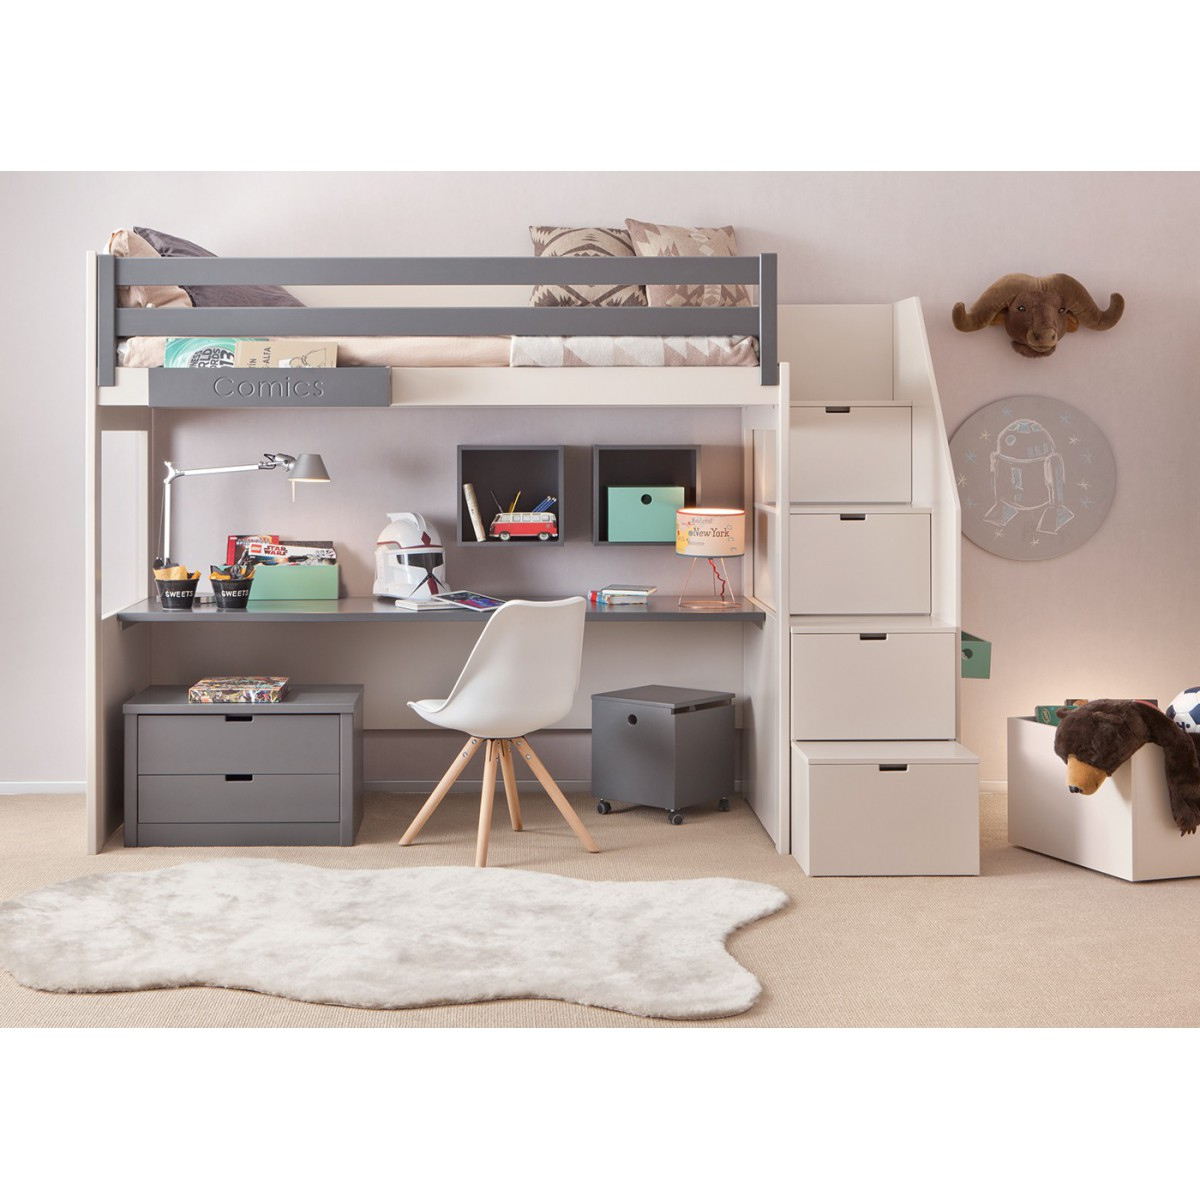 Chambre design sp cial ados juniors sign enfant design - Lit enfant mezzanine ...